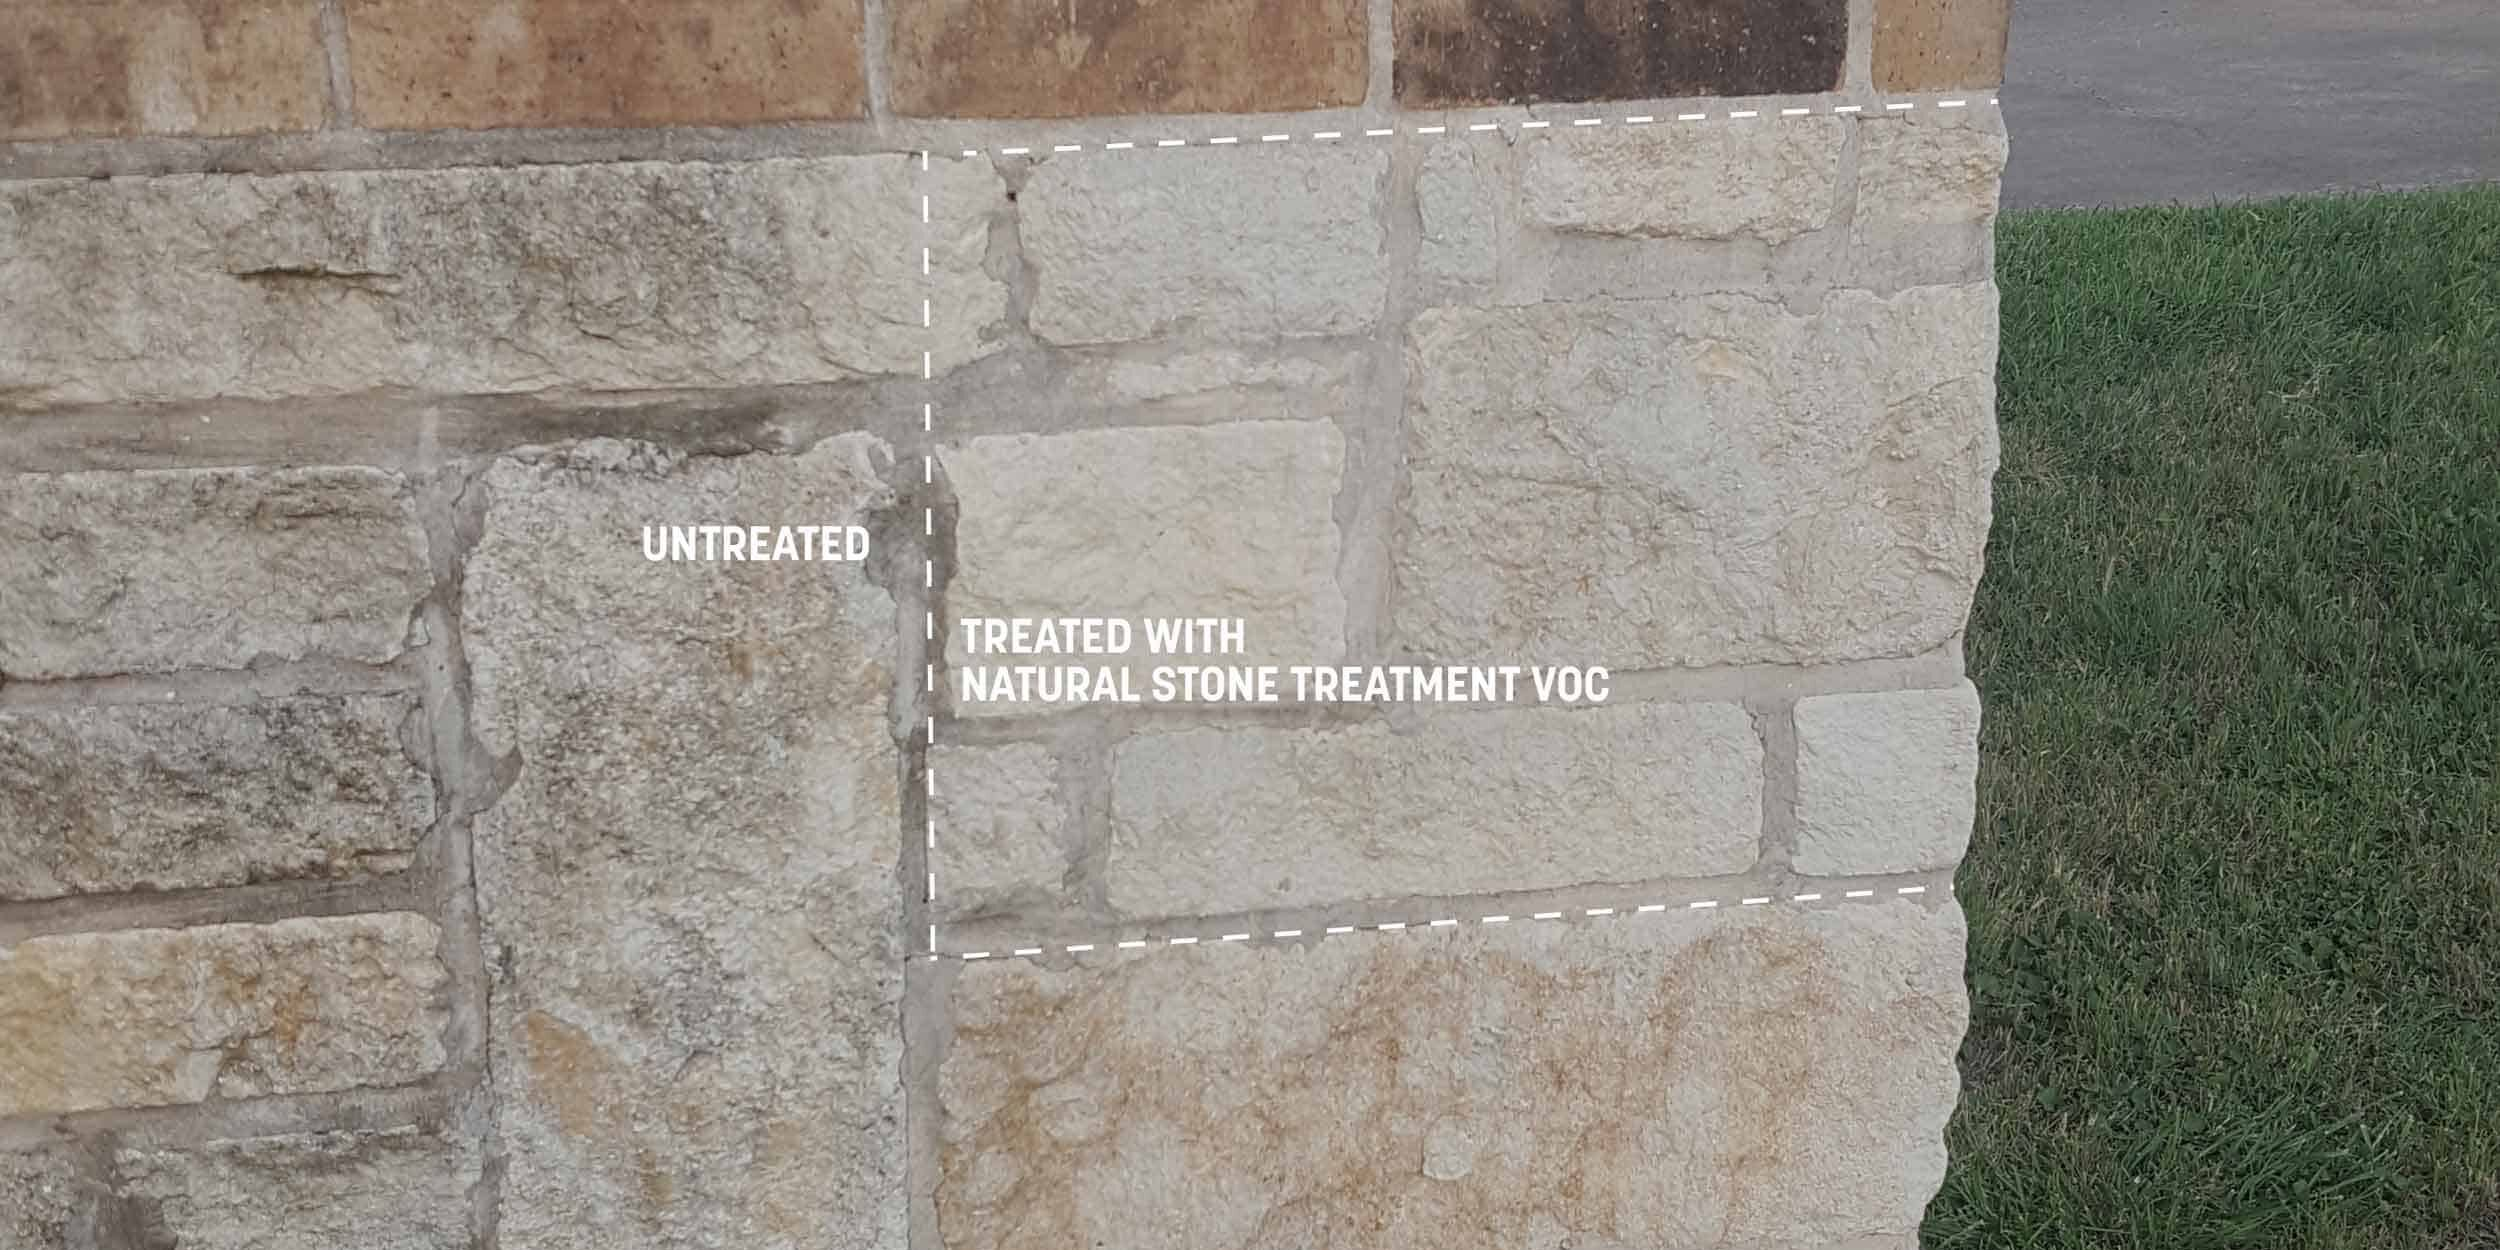 natural-stone-treatment-voc-before-and-after